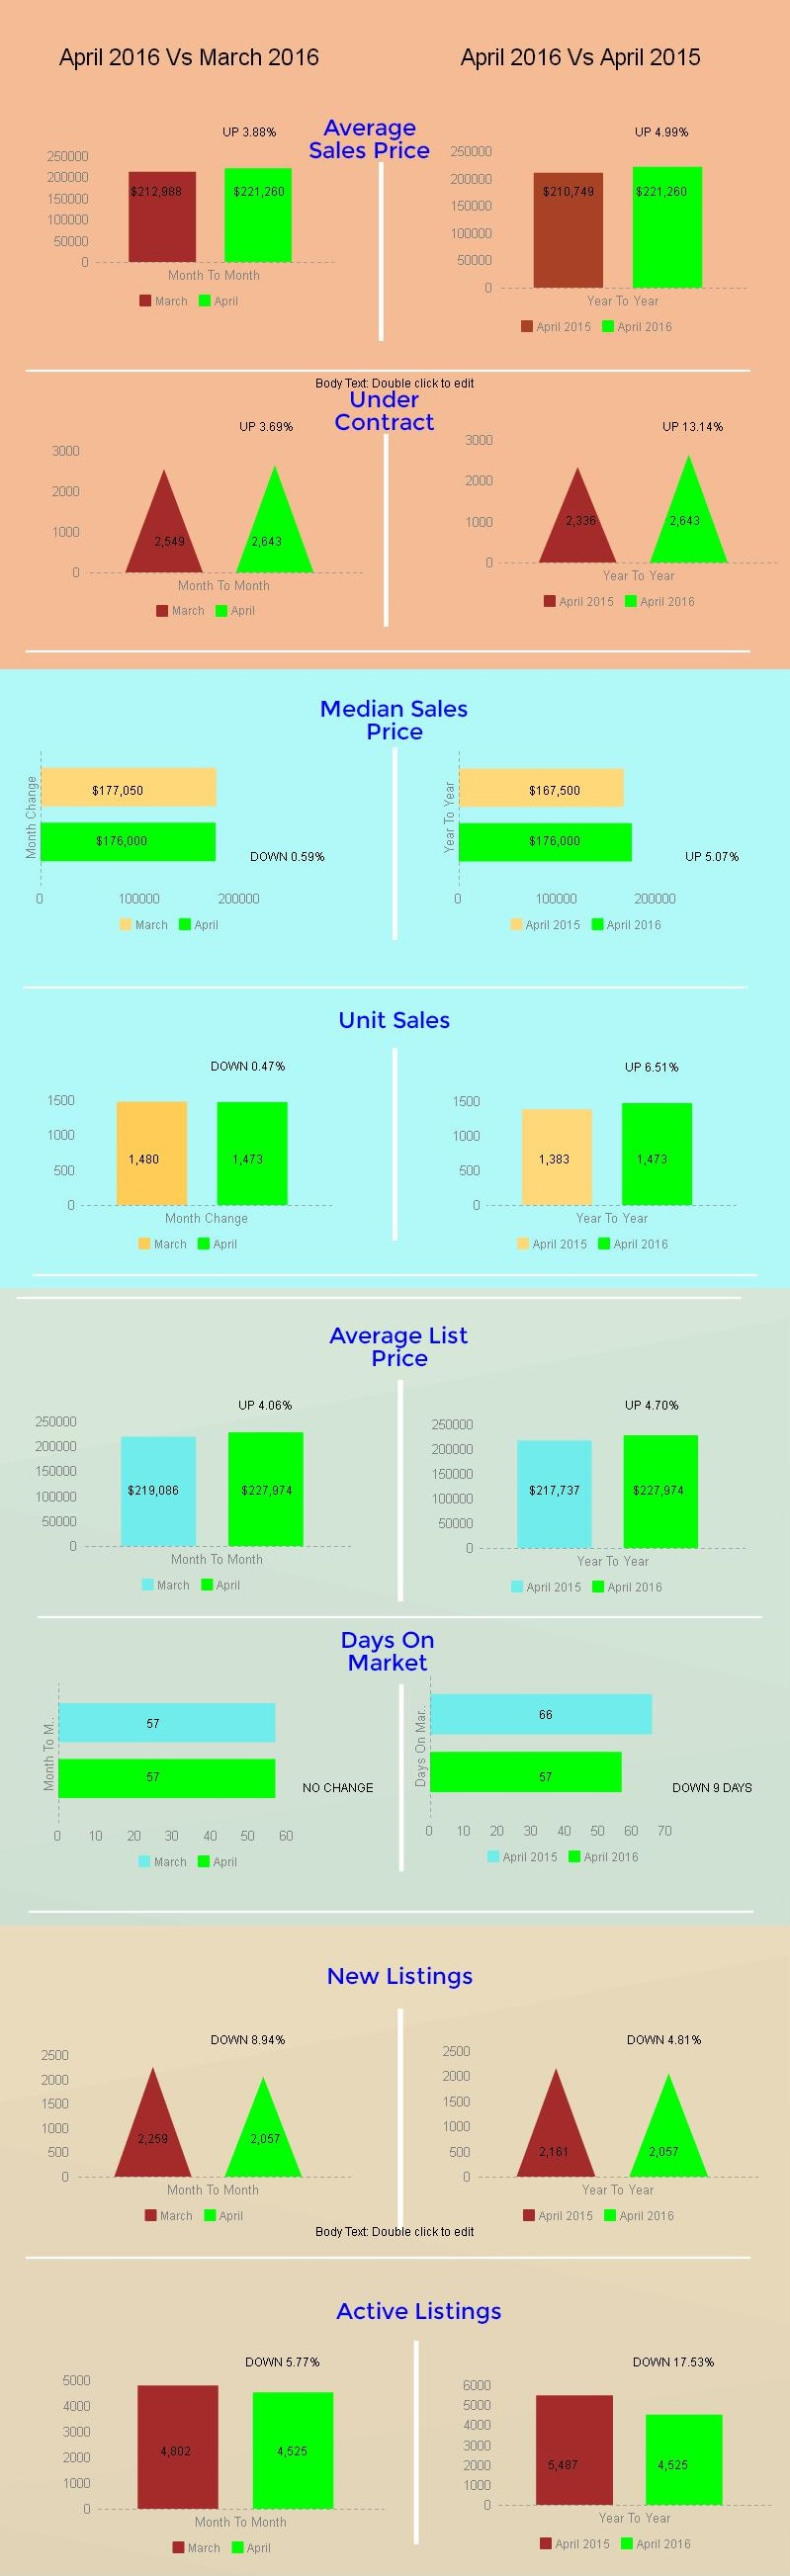 tucson housing market April 2016